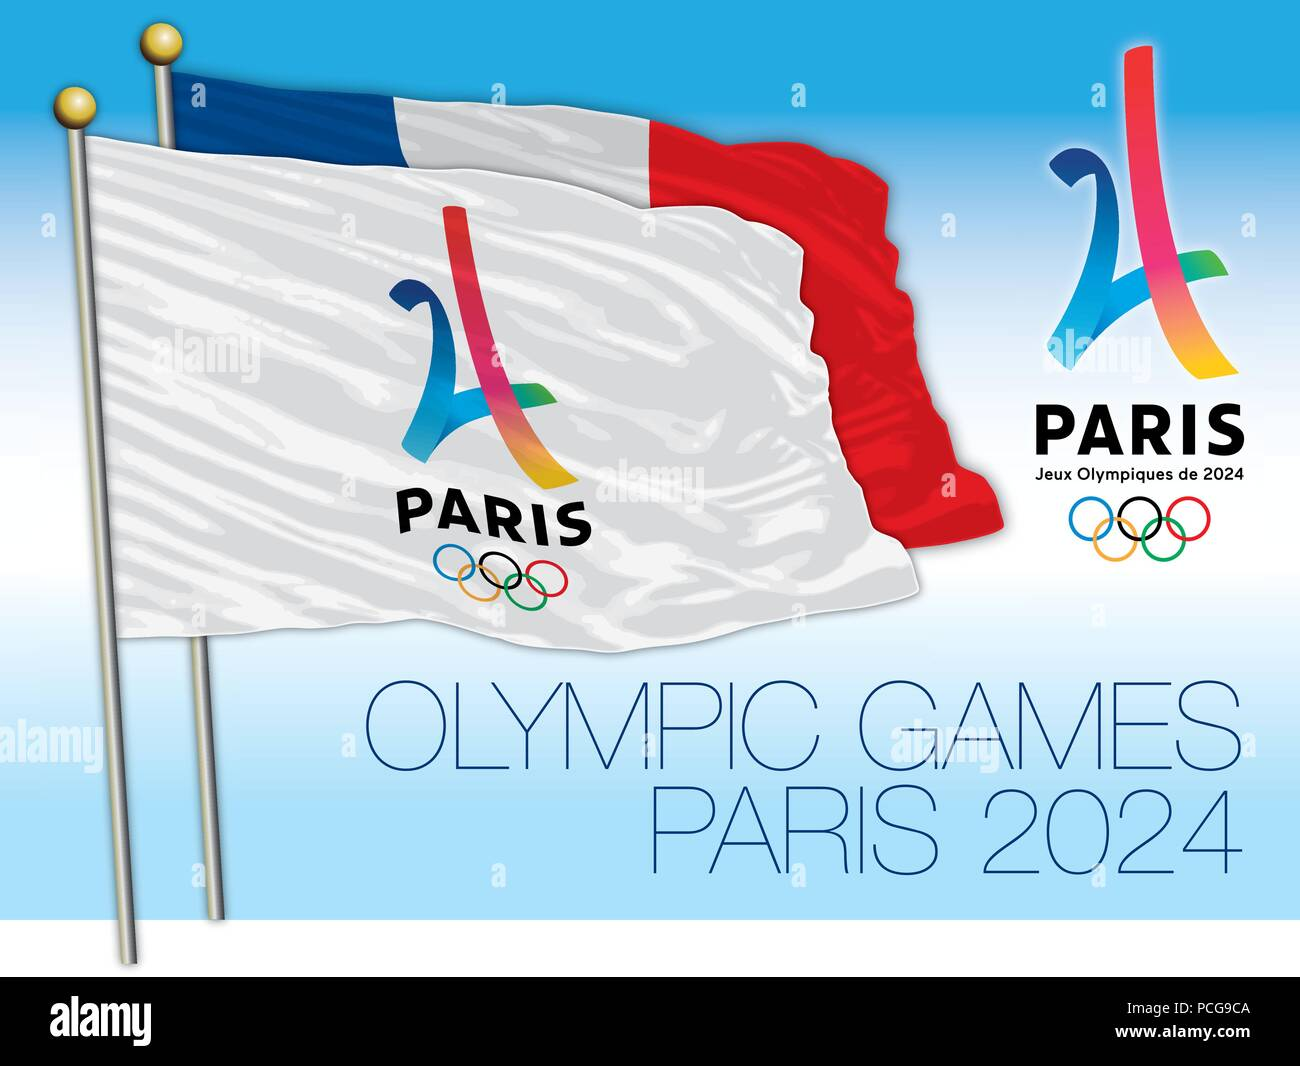 Olympic Games Paris 2024, logo and flags, vector illustration - Stock Vector